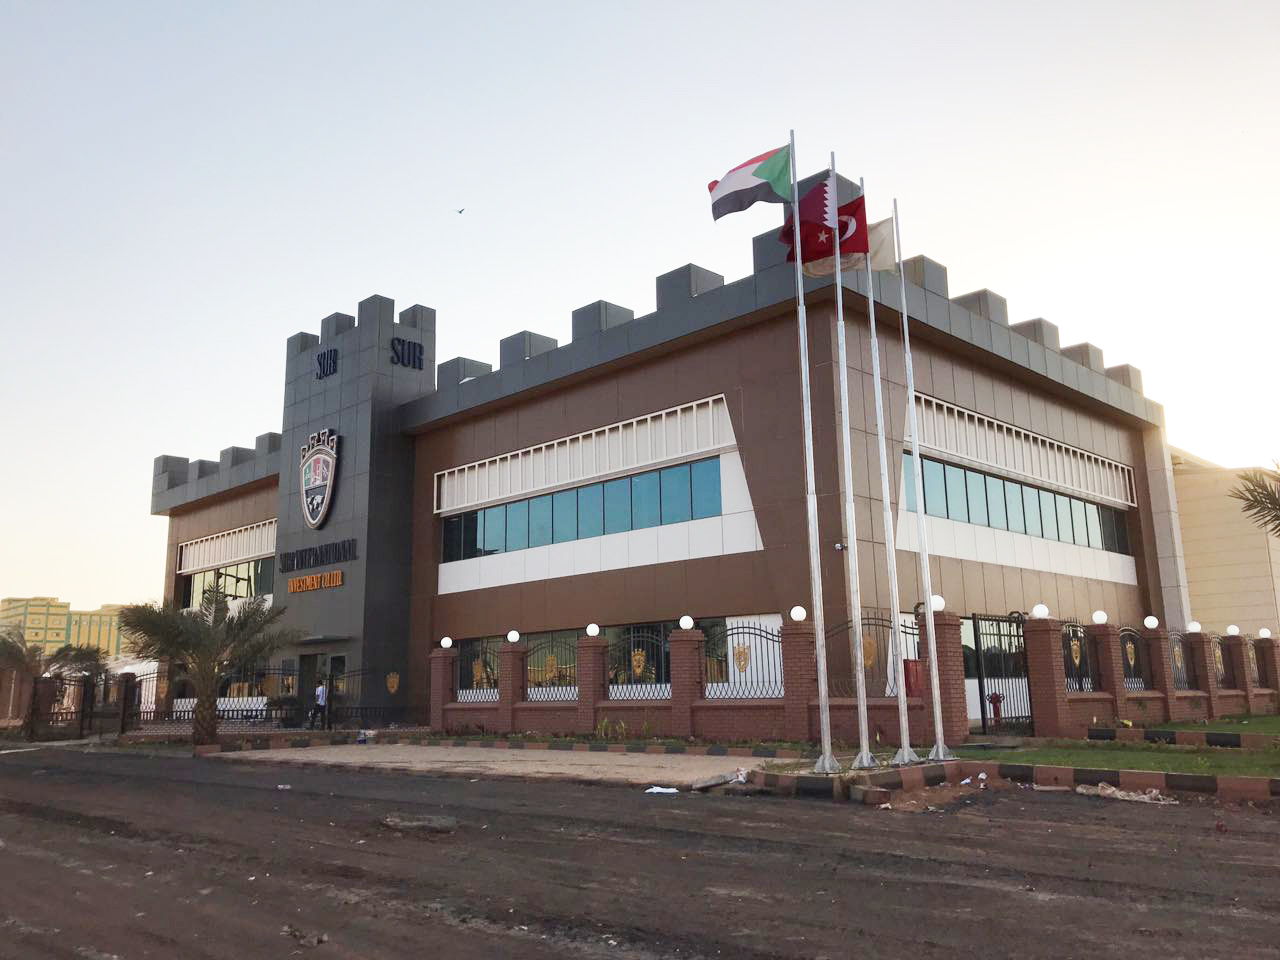 Sur International Sudan Khartoum Headquarters & Factory